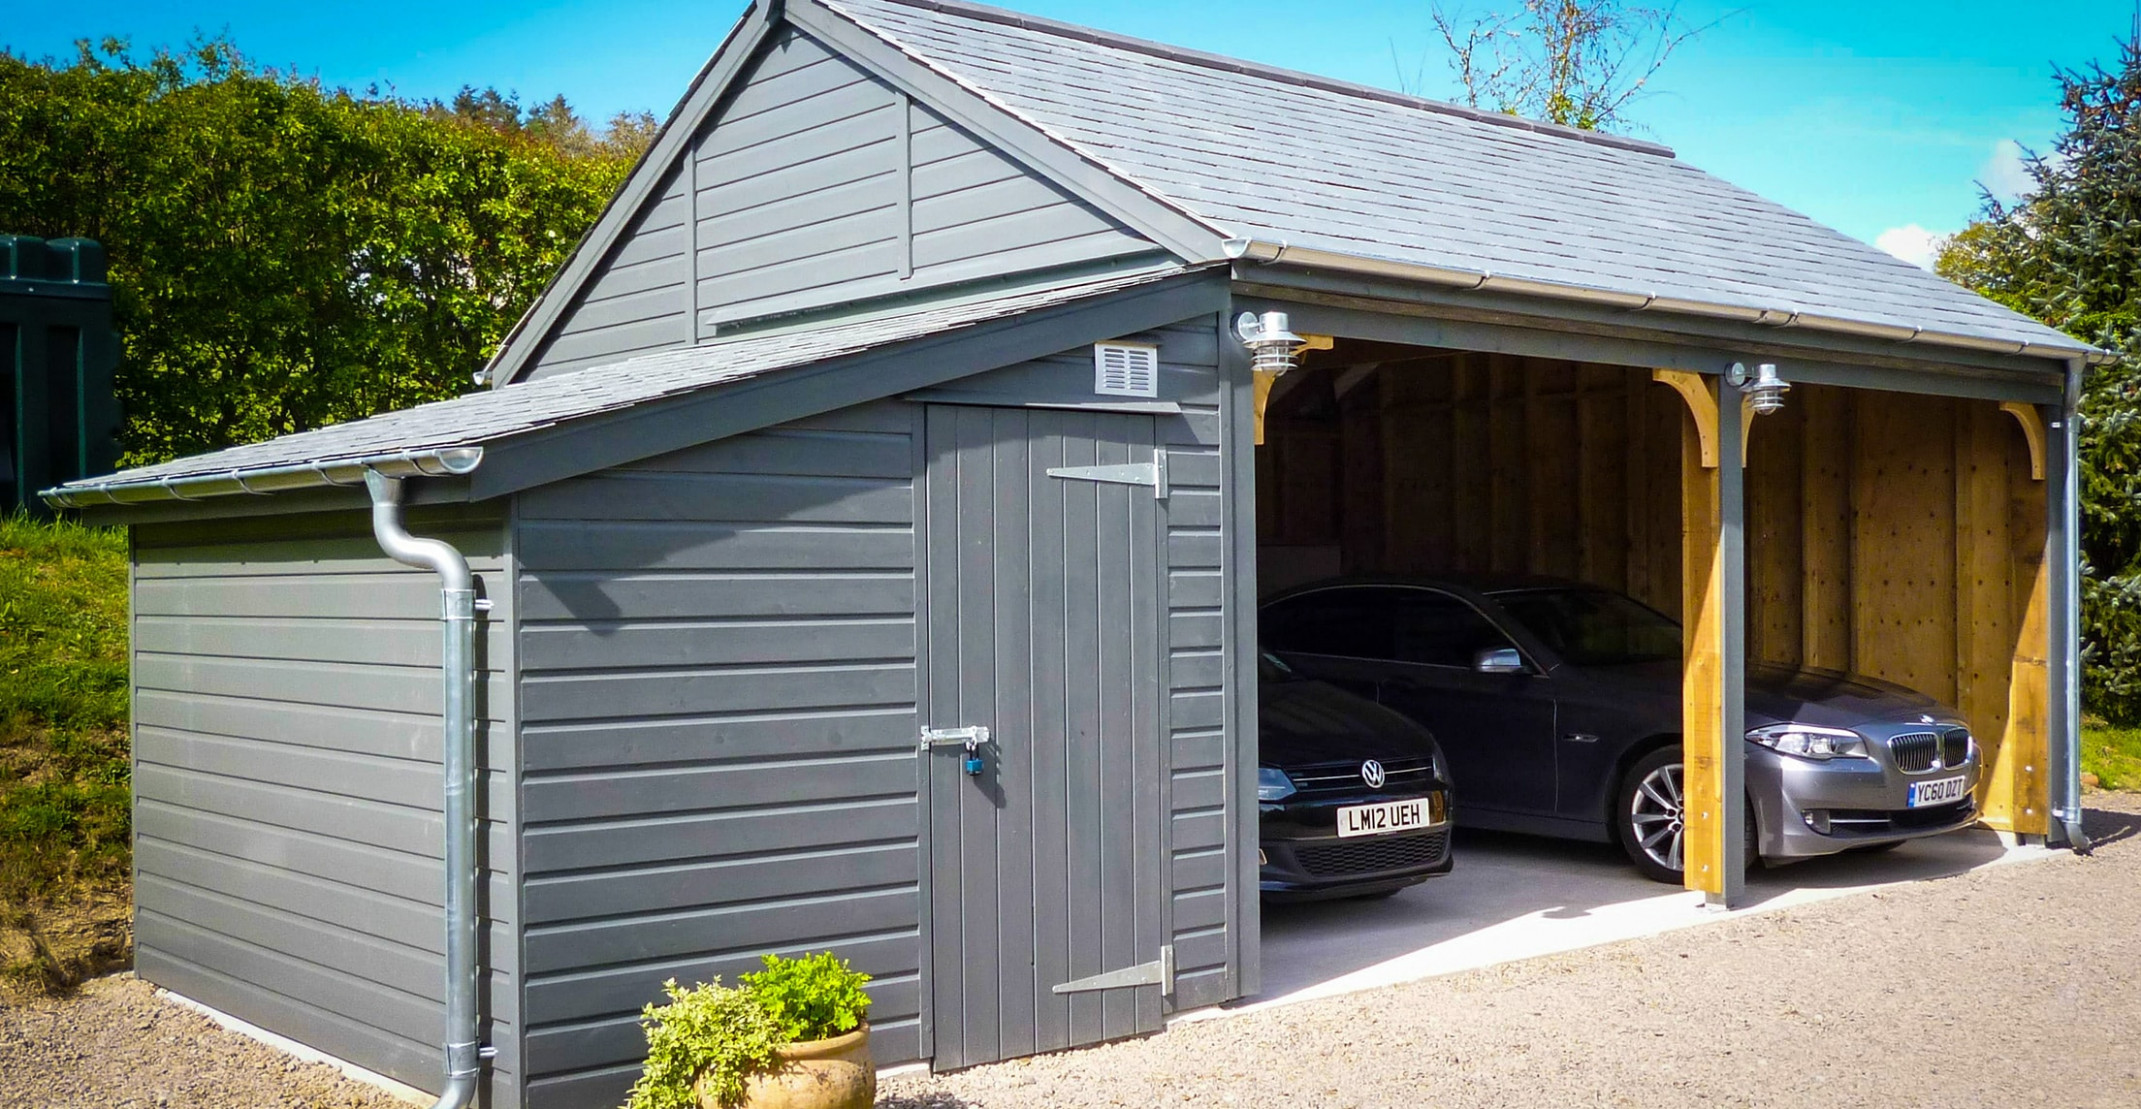 Wooden Carports In Devon By Shields Garden Buildings Carport Roof Design Uk